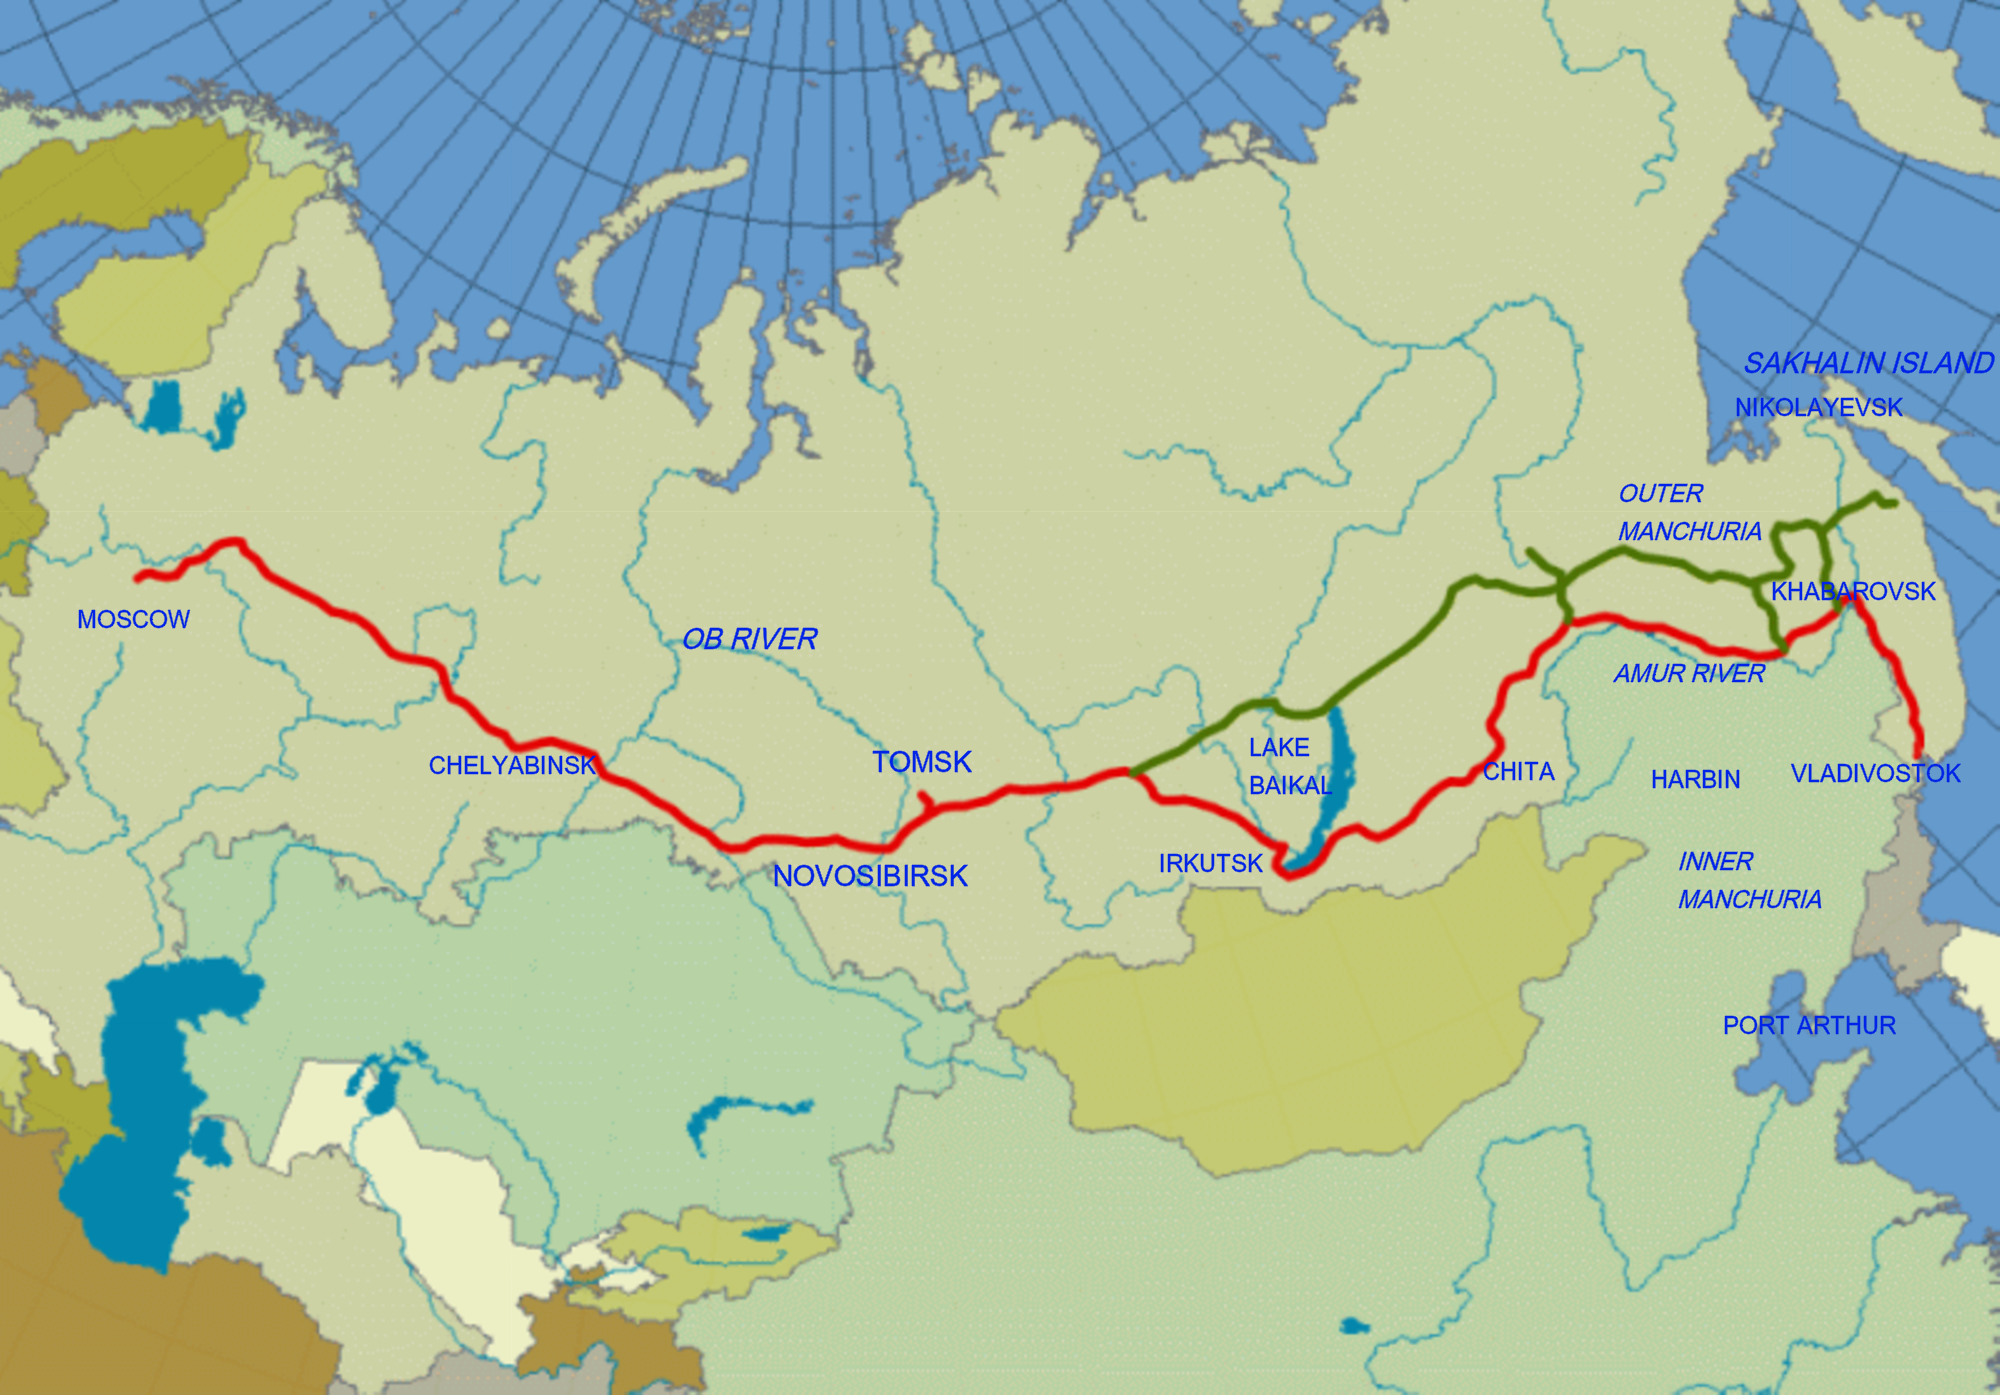 Trans-Siberian Railway. Construction of the Trans-Siberian Railway. Perspectives of the Trans-Siberian Railway 99